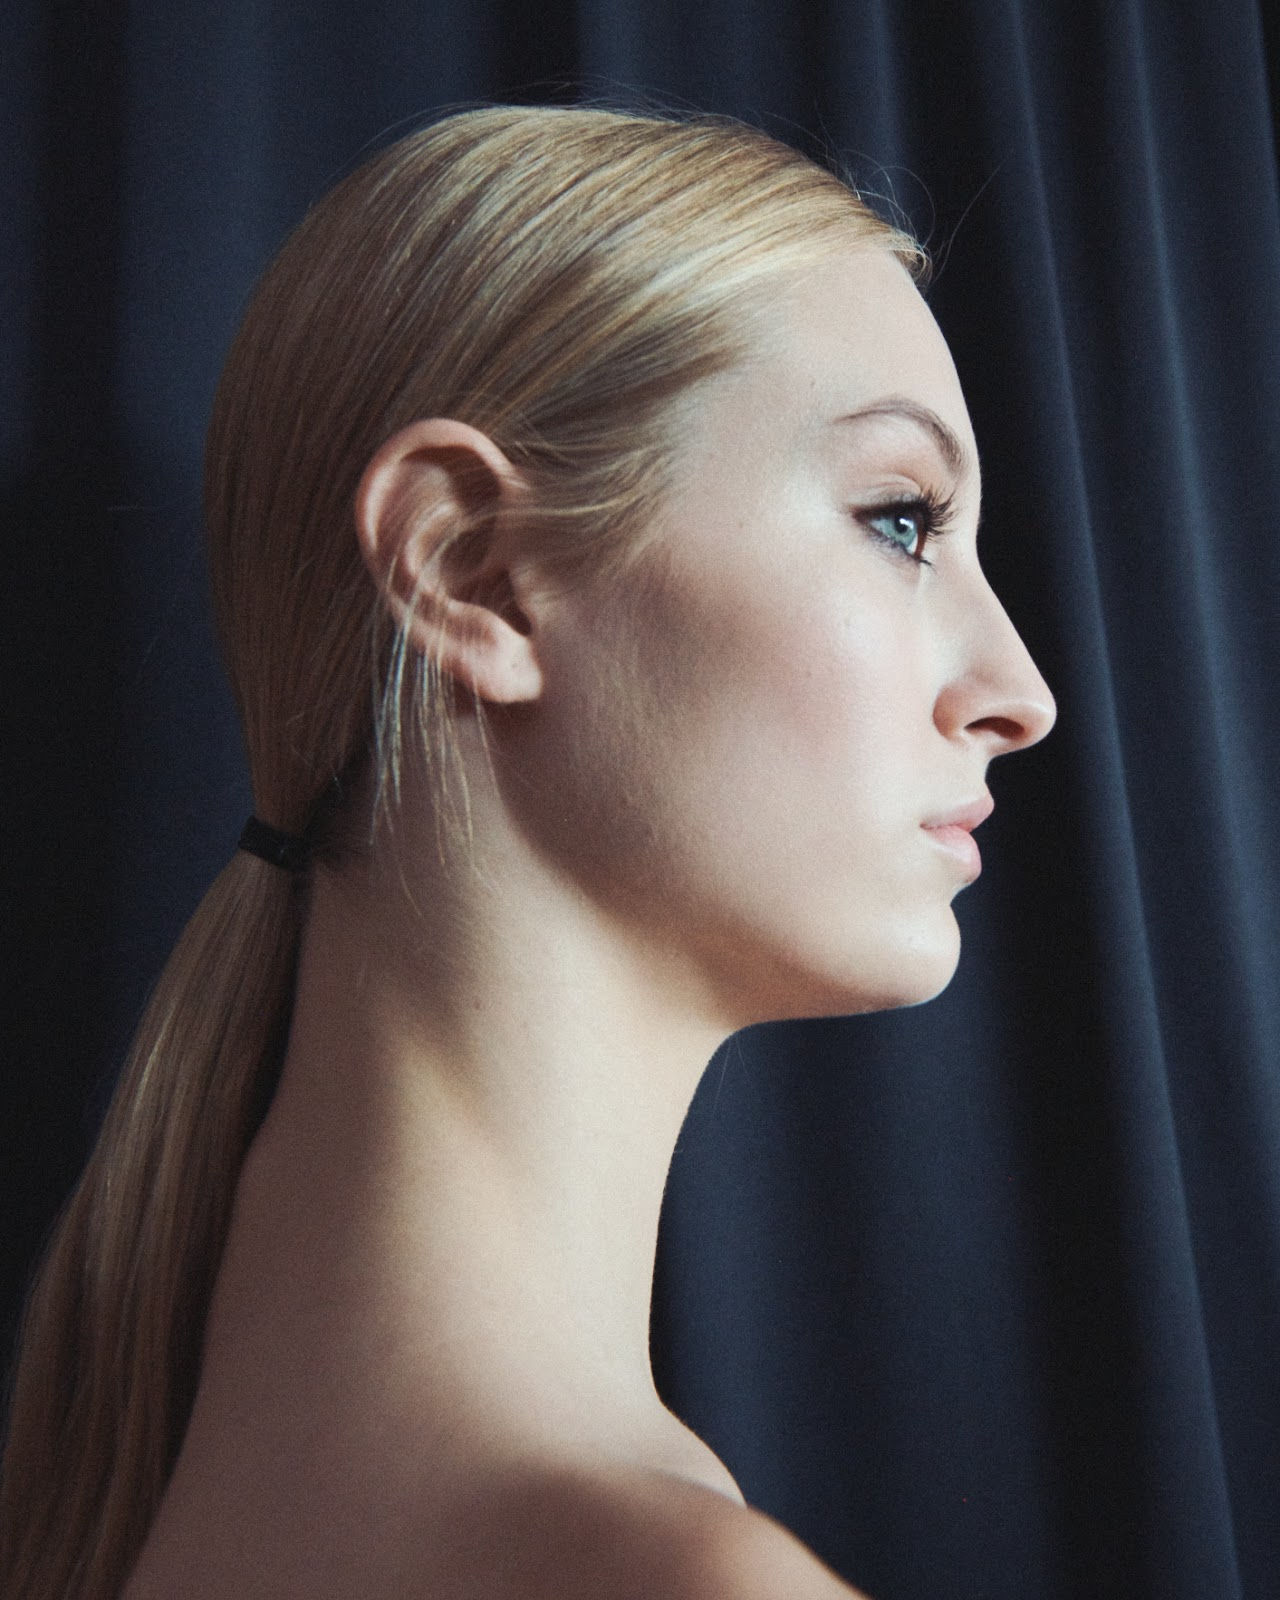 Woman with 70's inspired ponytail at NYFW